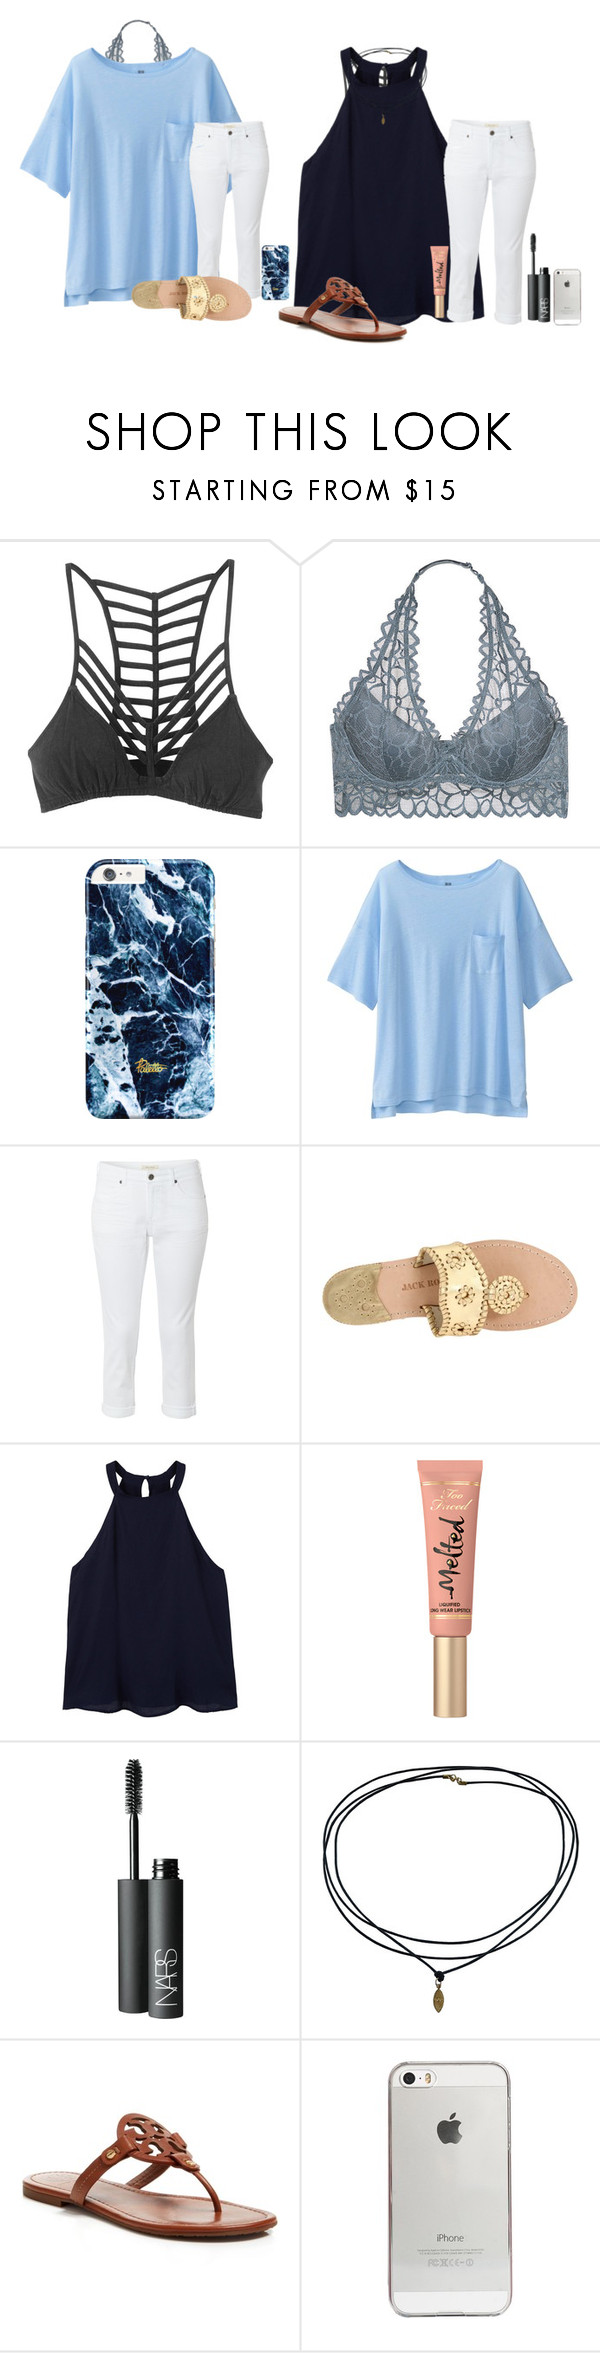 68c7da48e9 by madeleineds ❤ liked on Polyvore featuring RVCA, Victoria's Secret,  Uniqlo, White Stuff, Jack Rogers, MANGO, Too Faced Cosmetics, NARS  Cosmetics, Tory ...